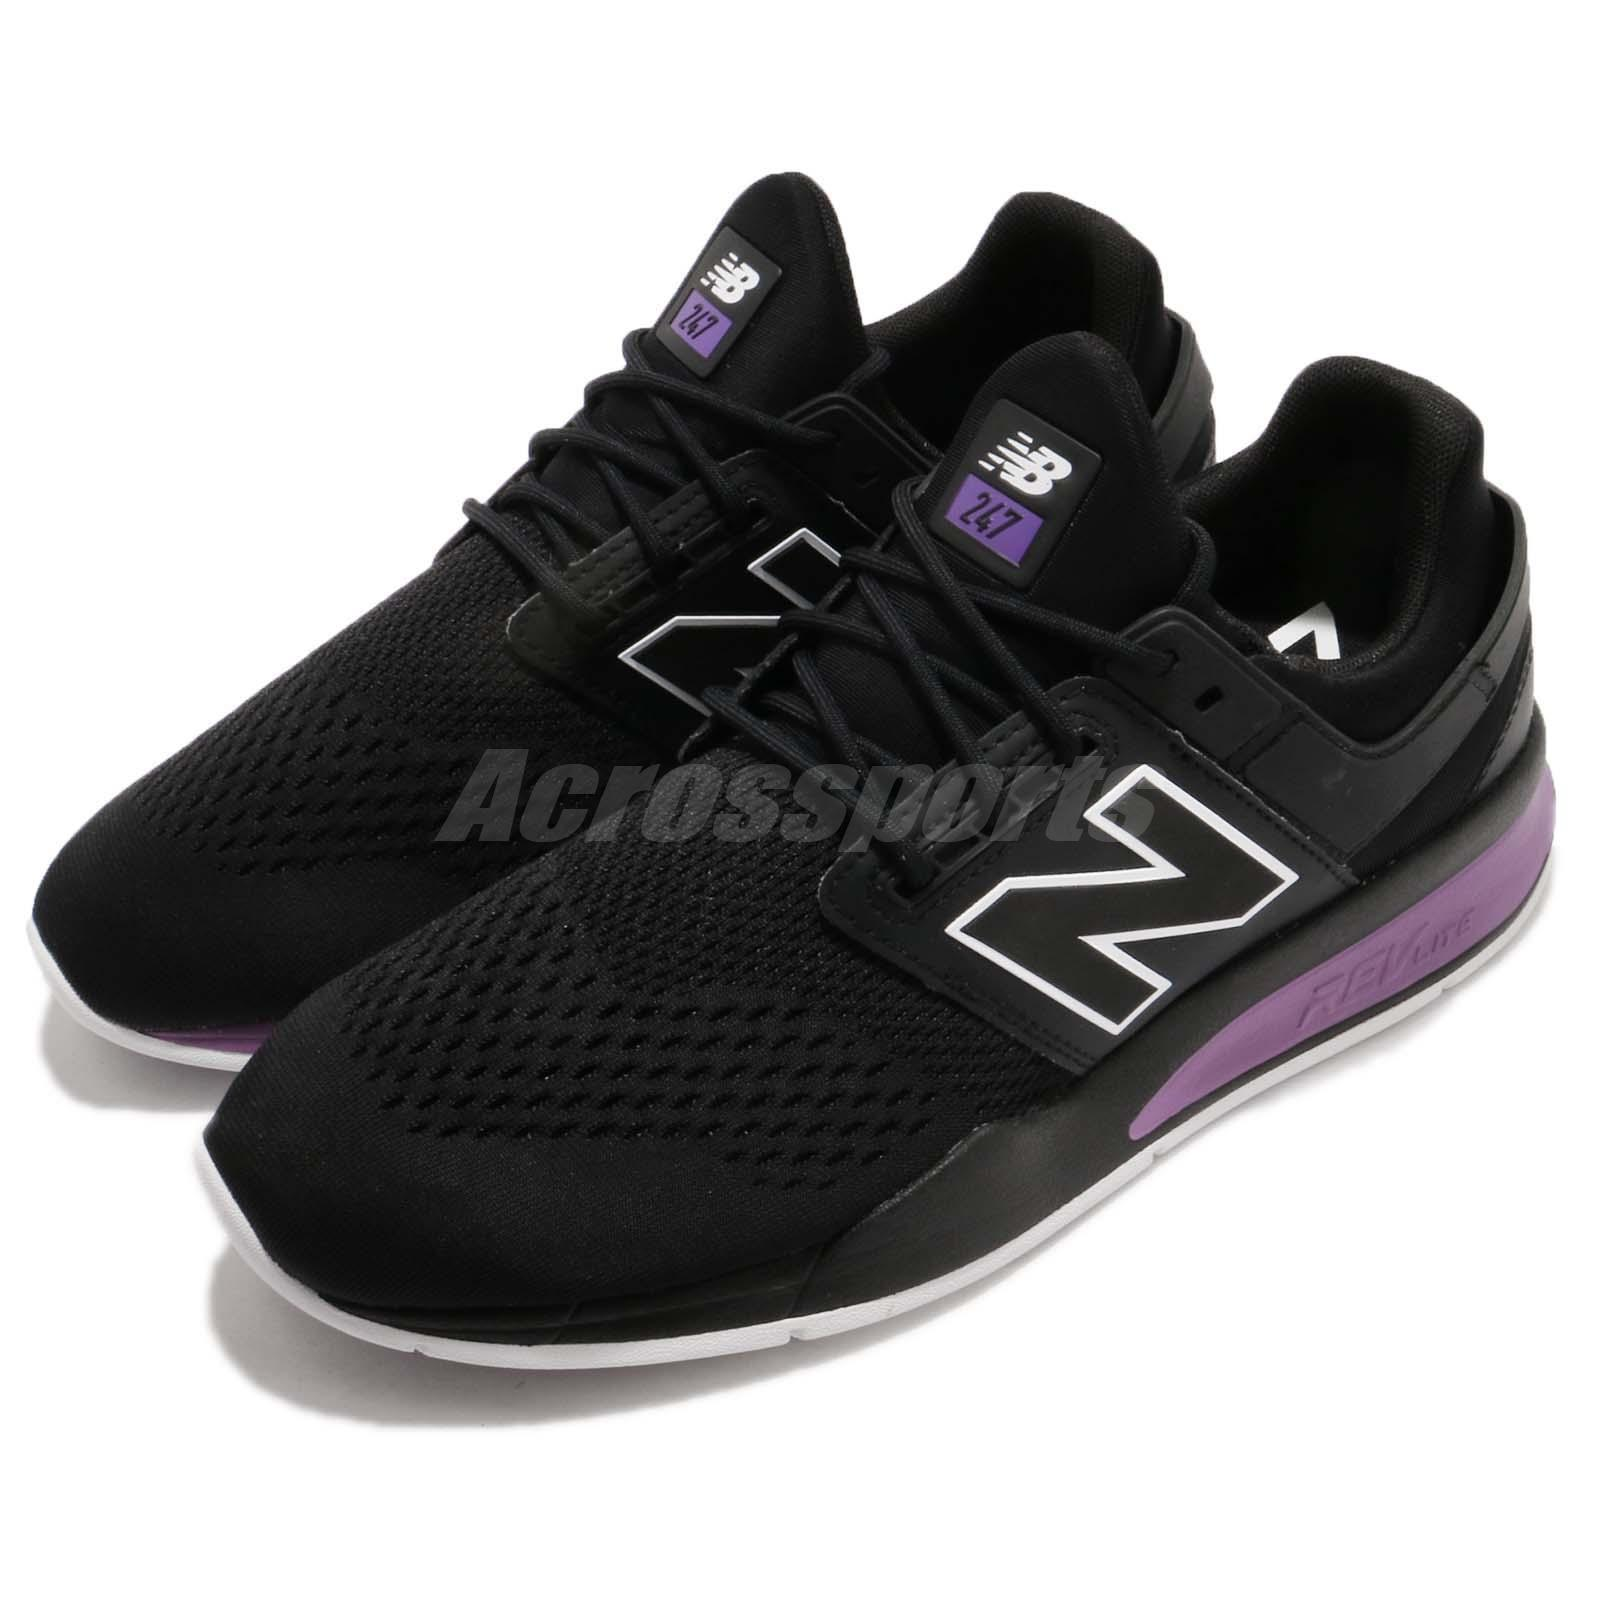 New Balance MS247TO D Black Black Black Purple White Running